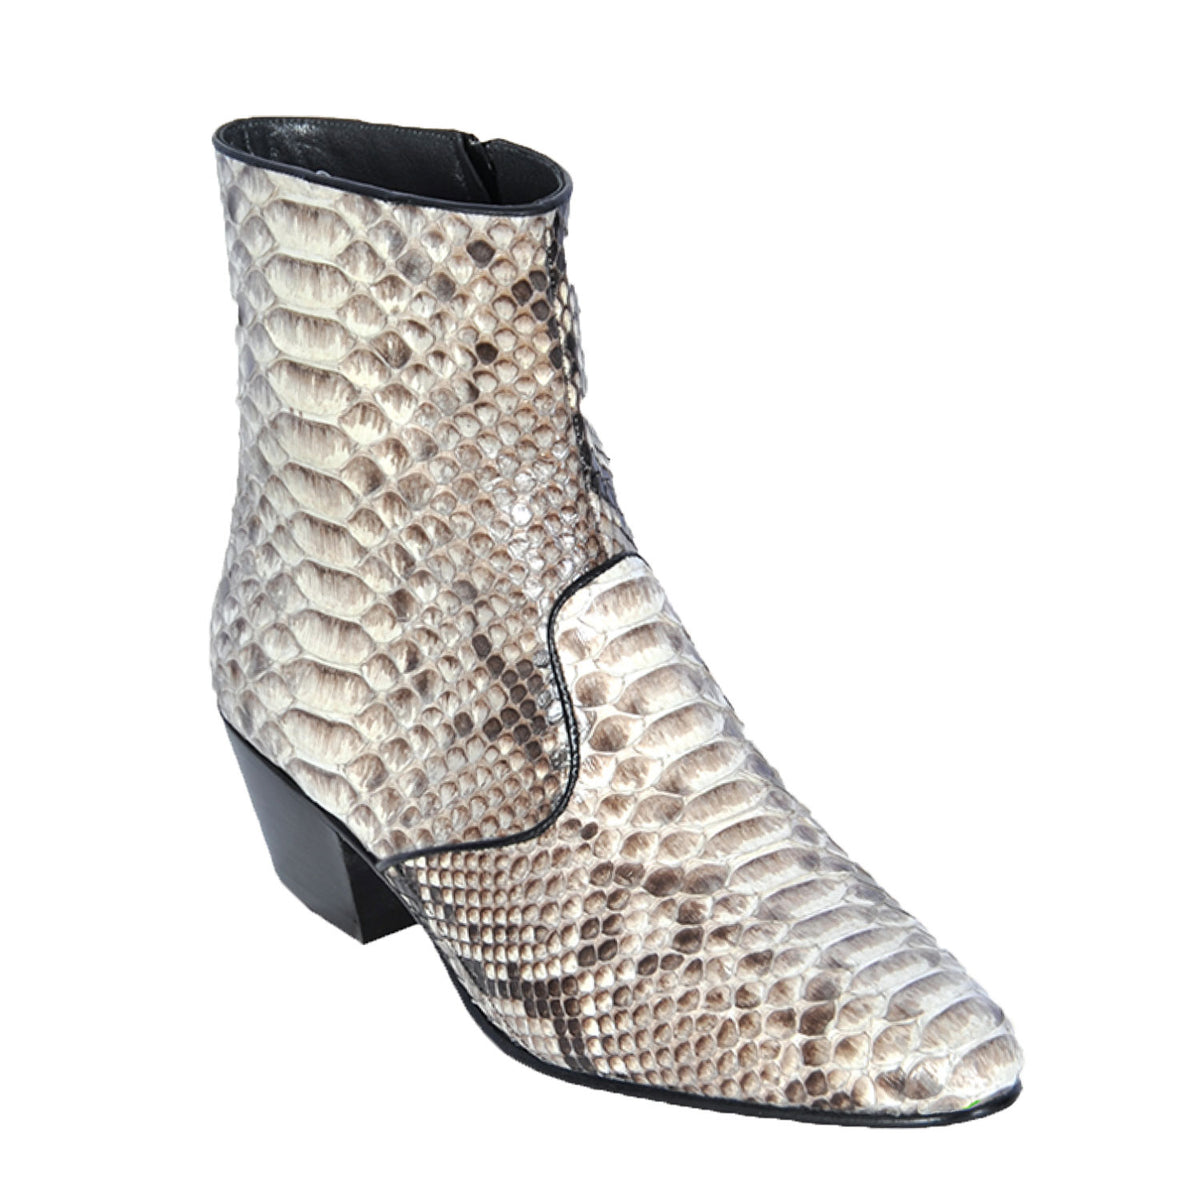 Python Skin Ankle Boot LAB-6357